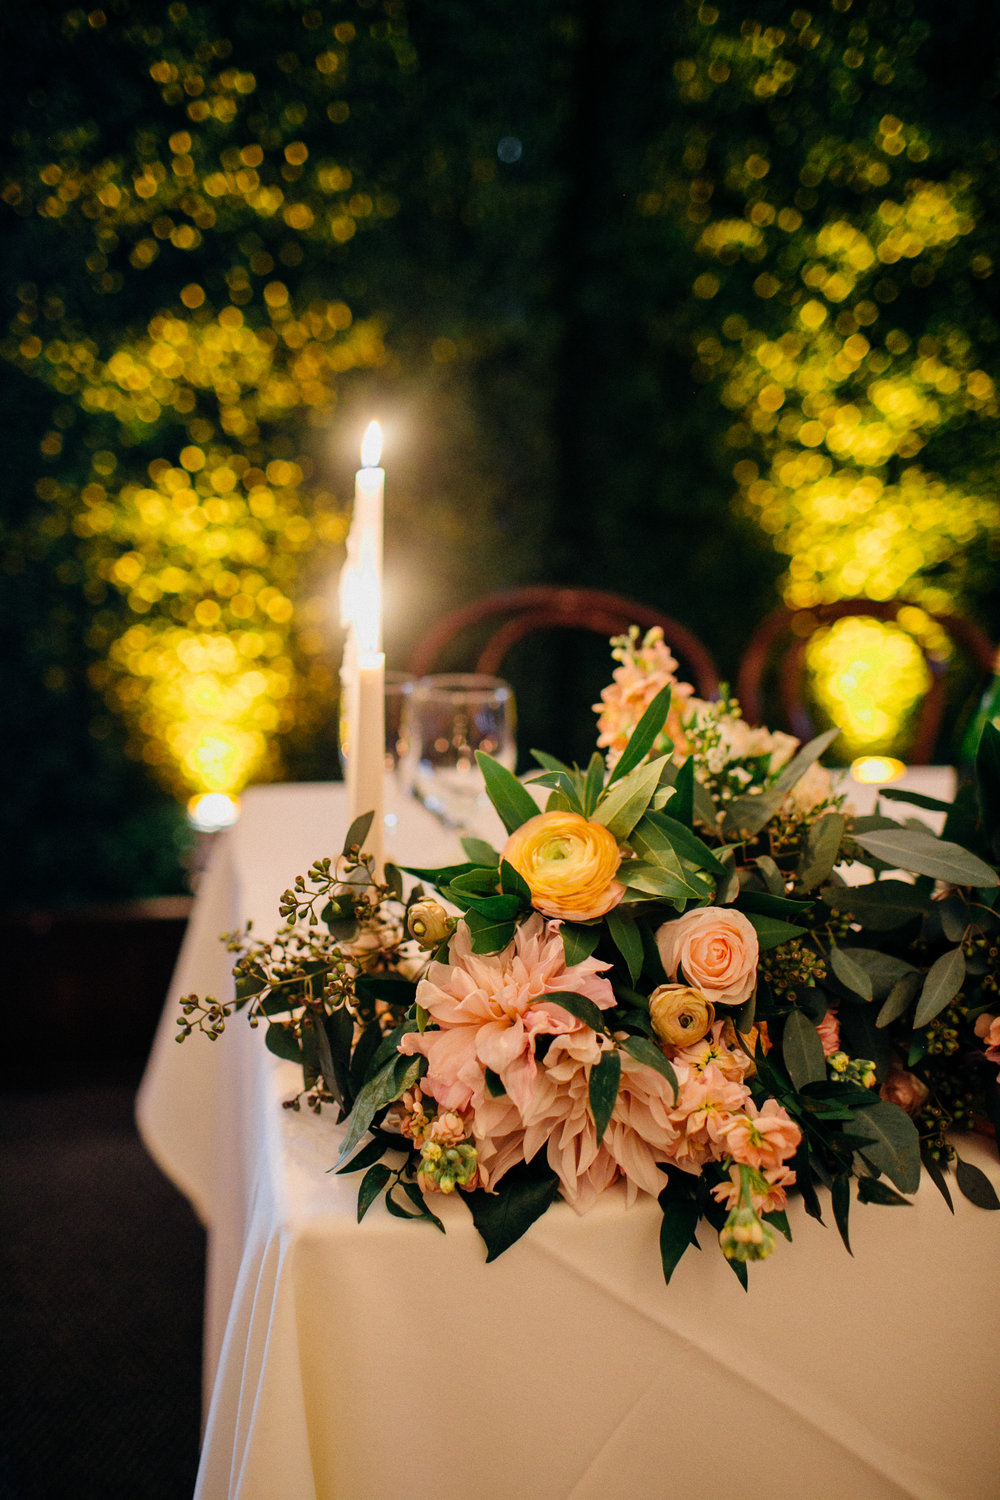 4d123-elegant-country-charm-ranch-wedding-couples-table-awash-in-moonlight-and-candlelight.jpg